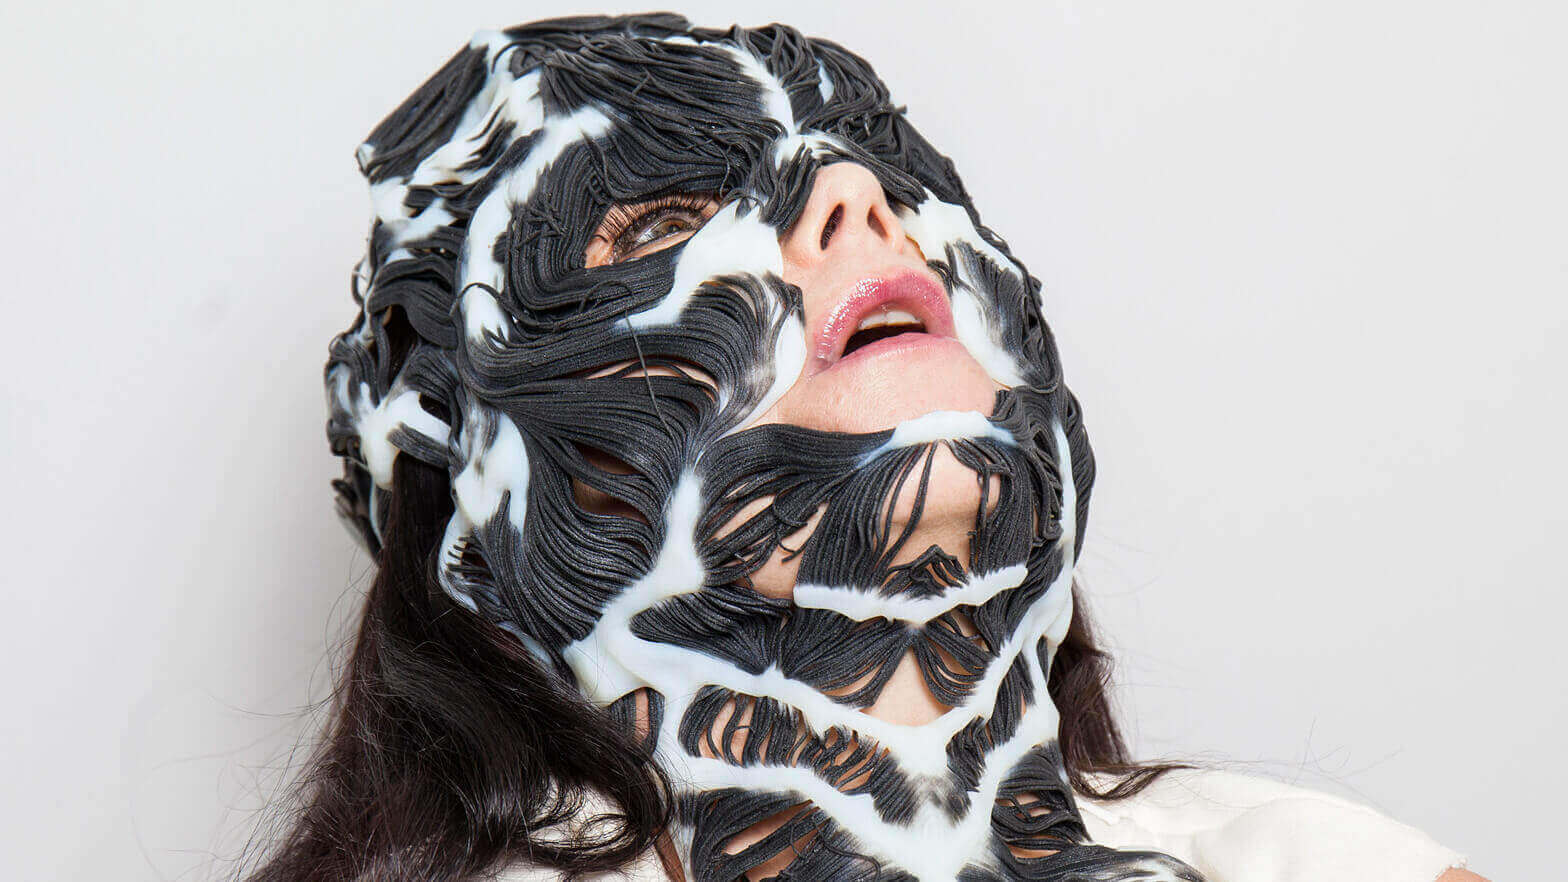 Björk Wears 3D Printed Rottlace Mask for Live Performance | All3DP